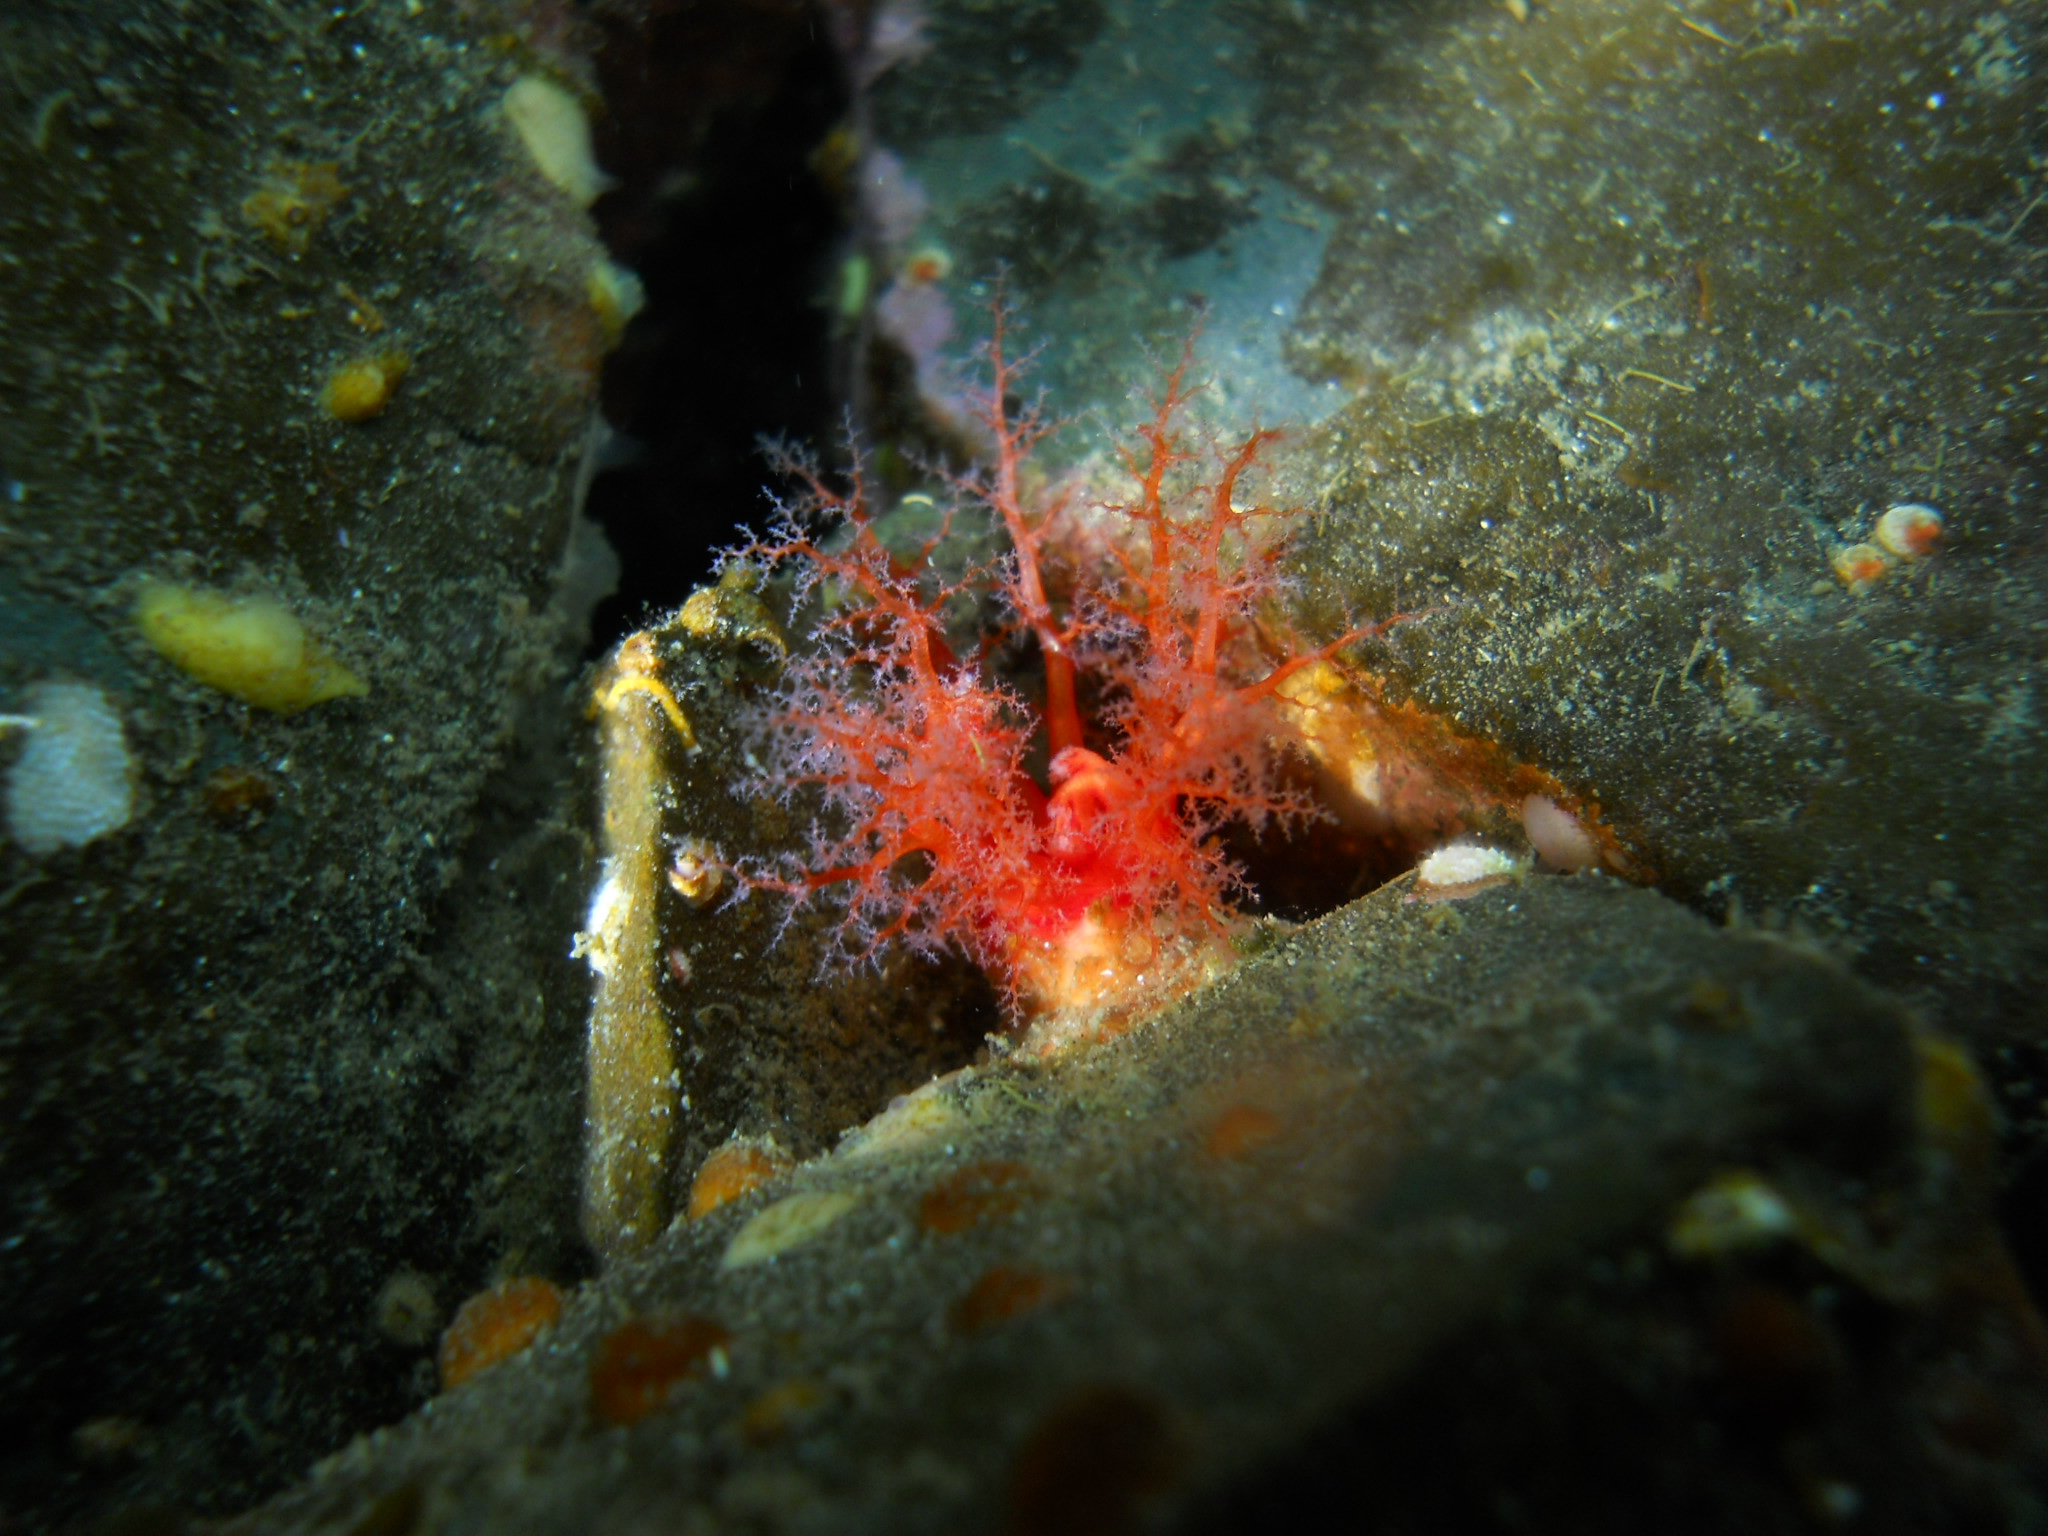 Creeping Pedal Sea Cucumber